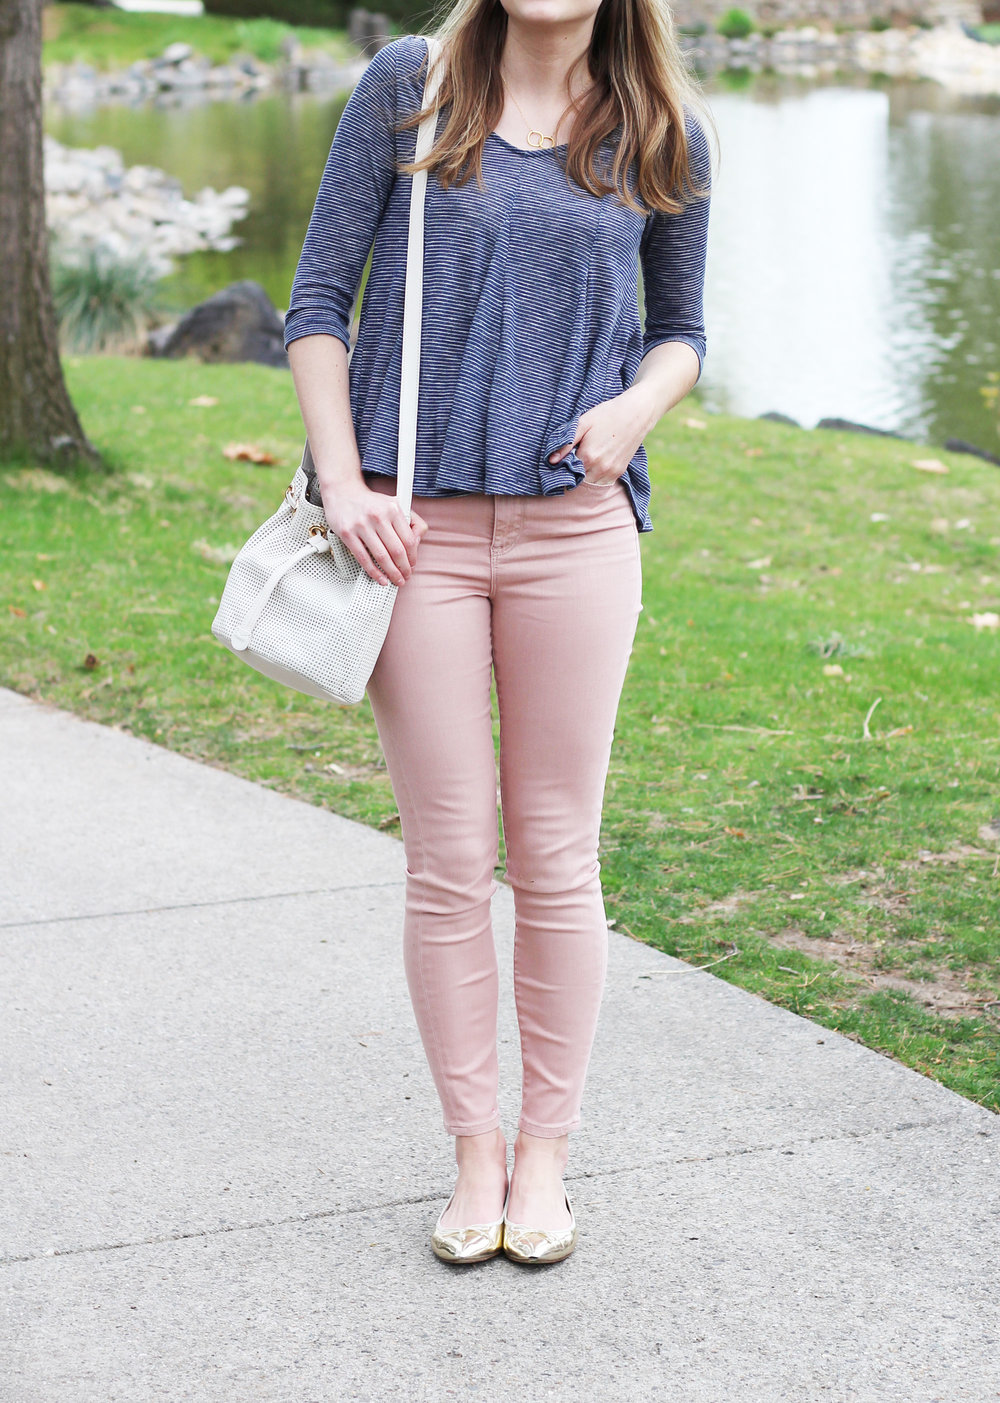 Spring outfit with navy striped top and blush pink skinny jeans — Cotton Cashmere Cat Hair